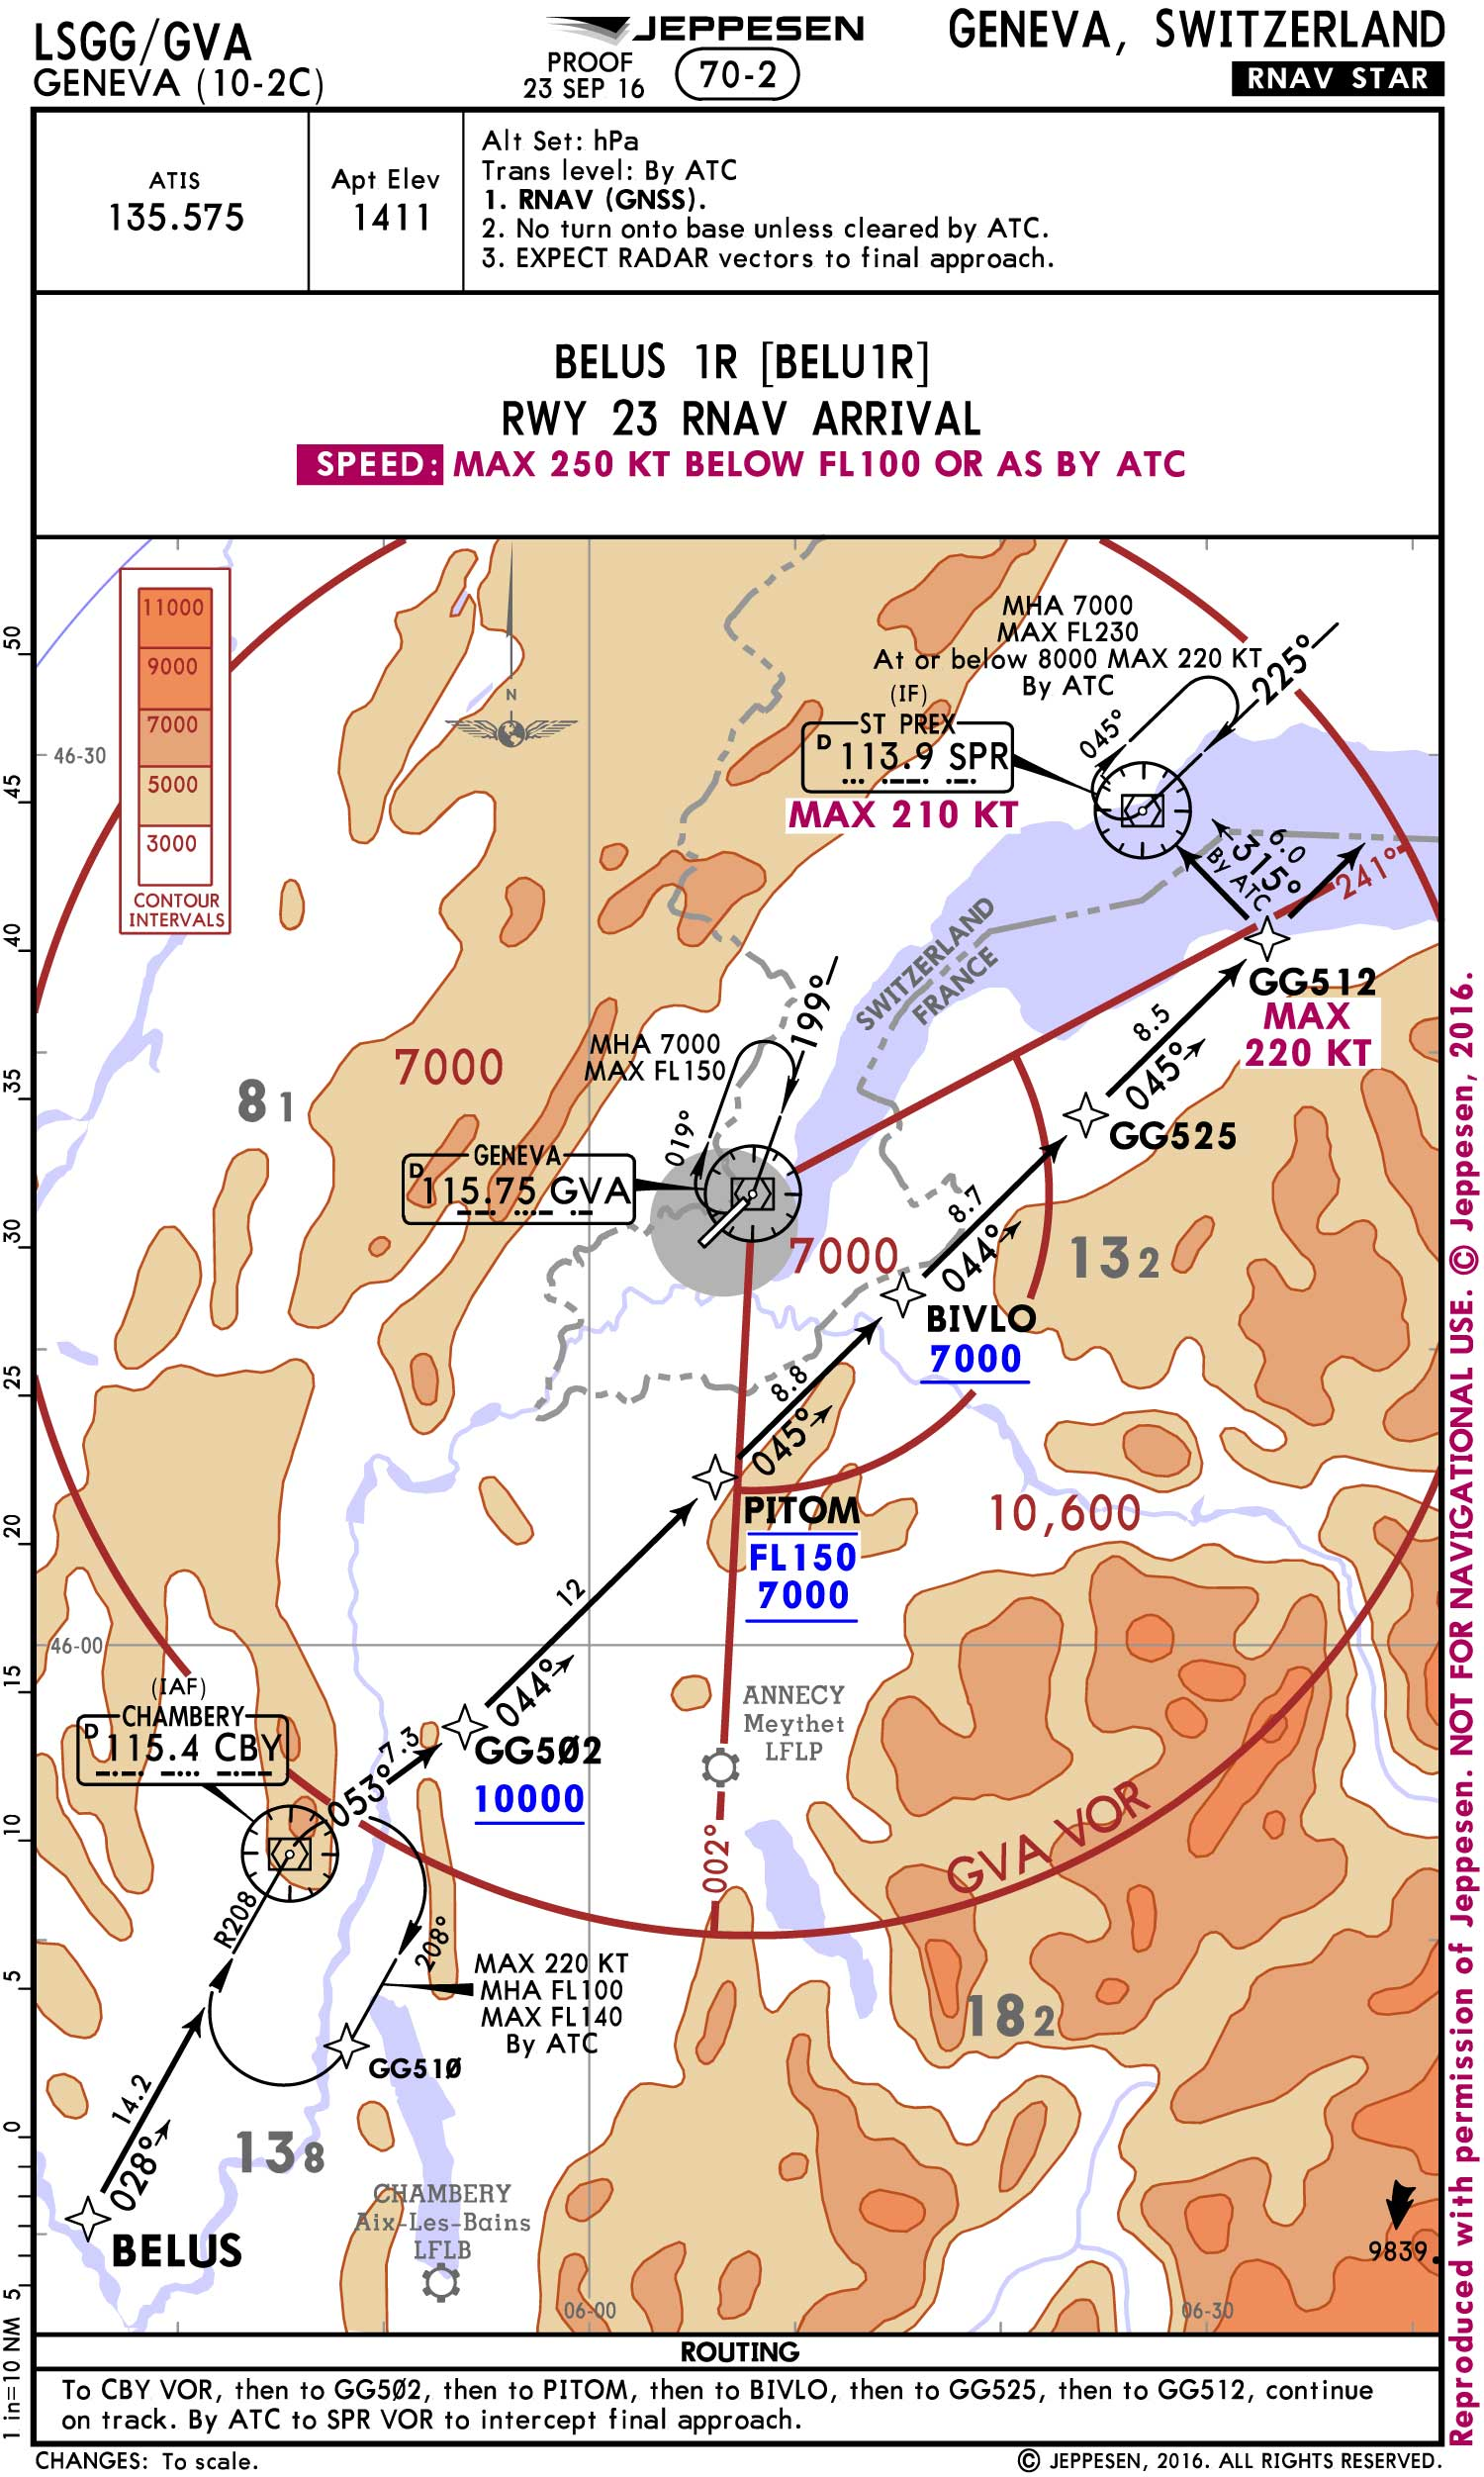 Jeppesen IFR charts